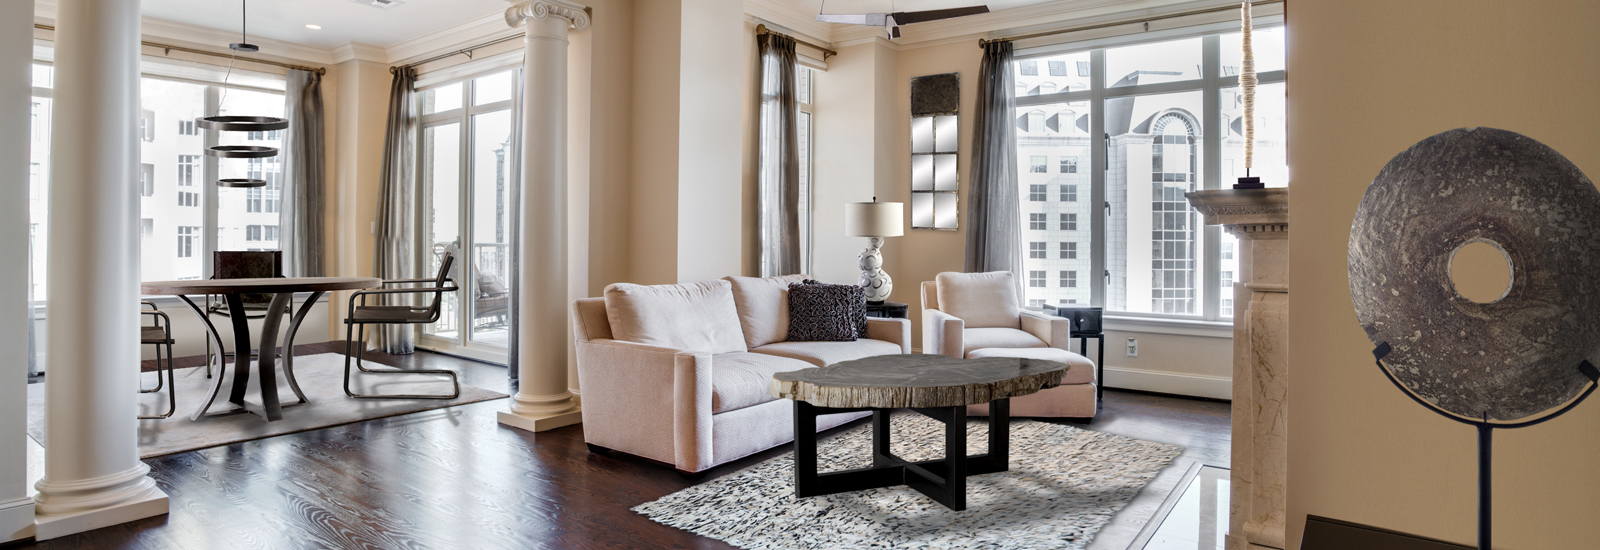 A Virtual Redesign with Luxury Online Marketplace 1stDibs and Interior Design Firm Brendan Bass - Christie's International Real Estate